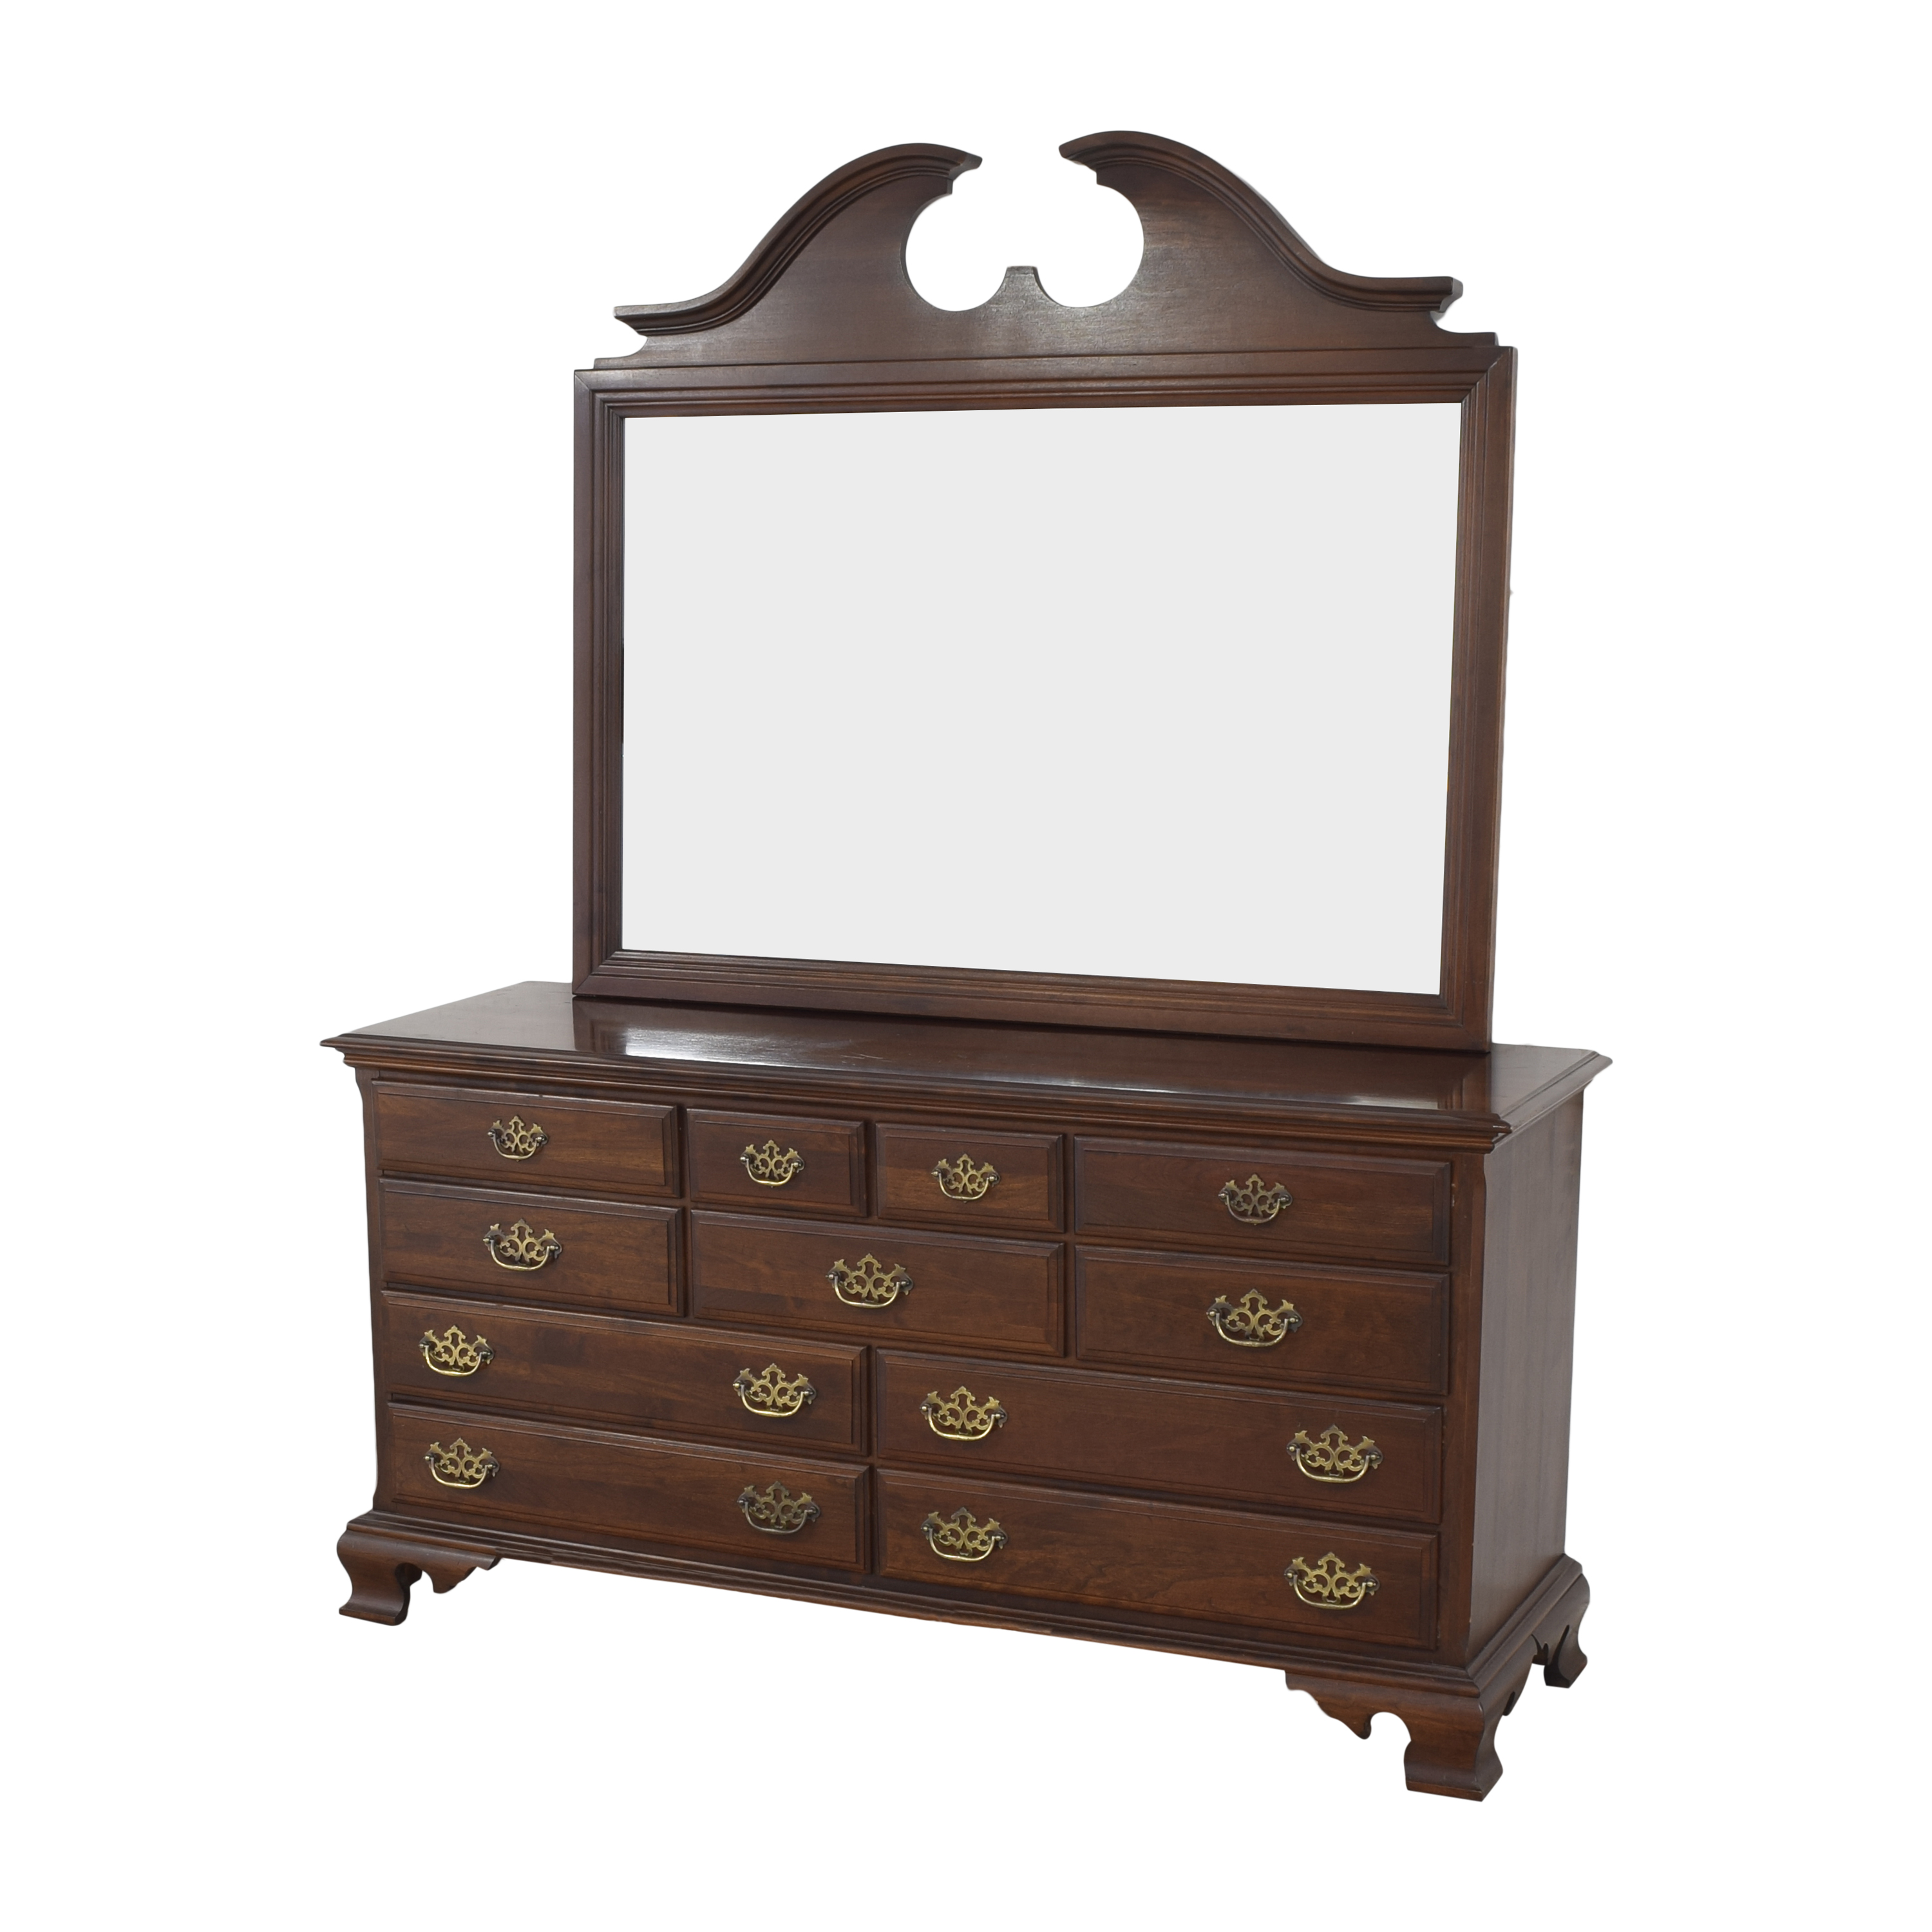 Chippendale-Style Dresser with Mirror nj